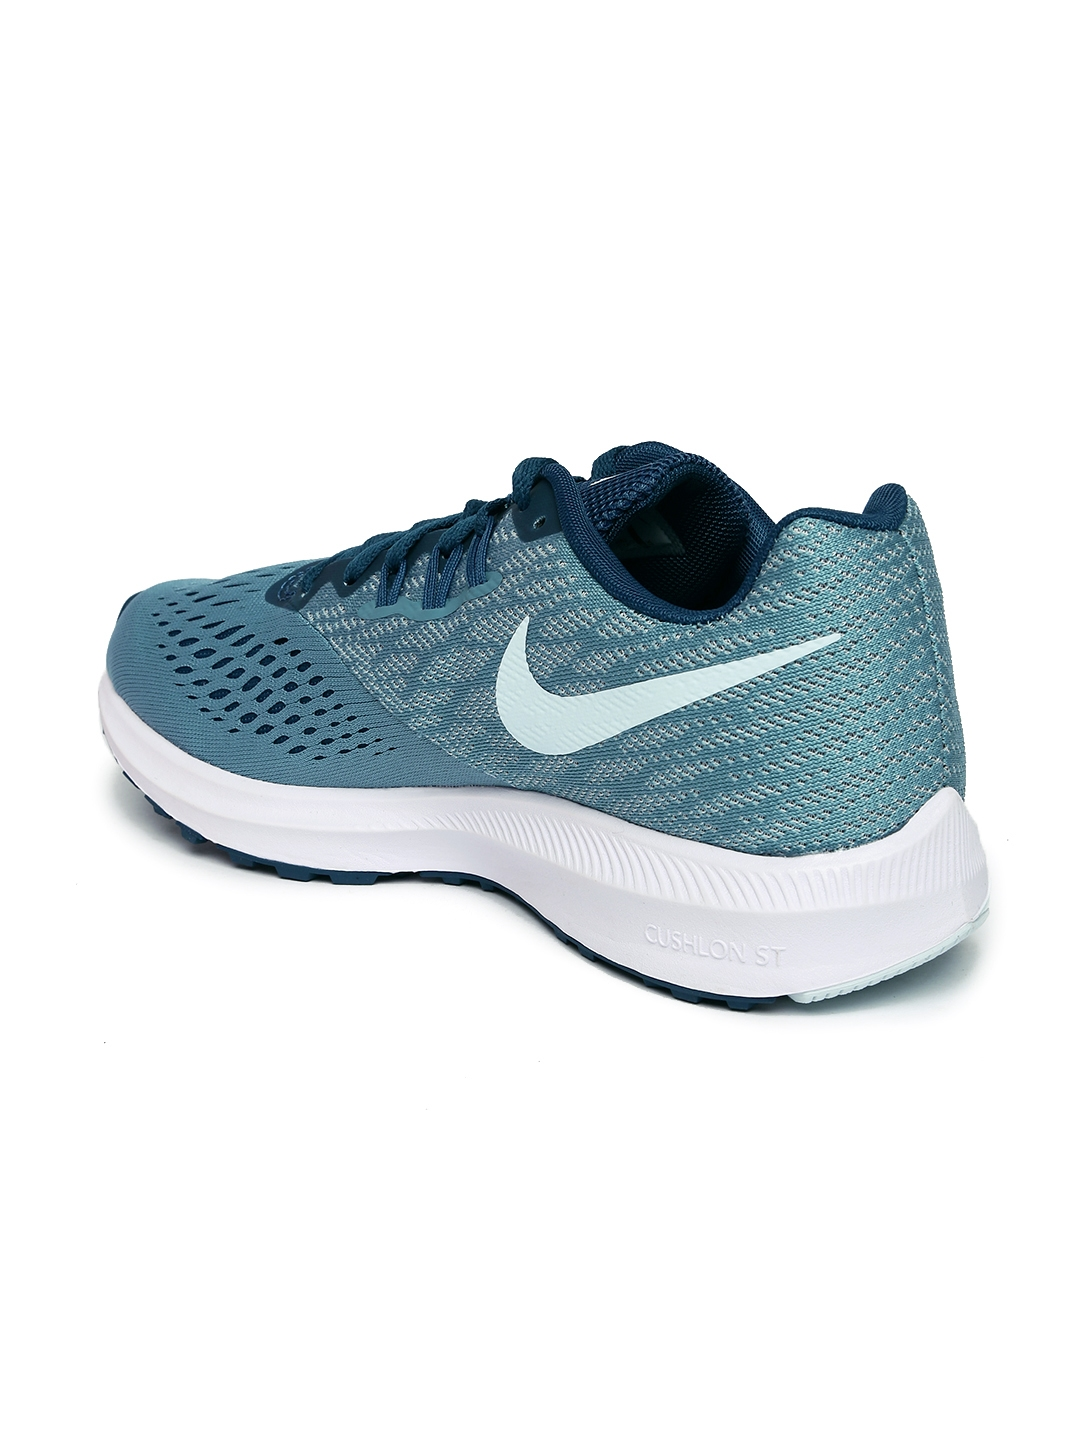 c27a936c3bf4 Buy Nike Women Teal Blue ZOOM WINFLO 4 Running Shoes - Sports Shoes ...